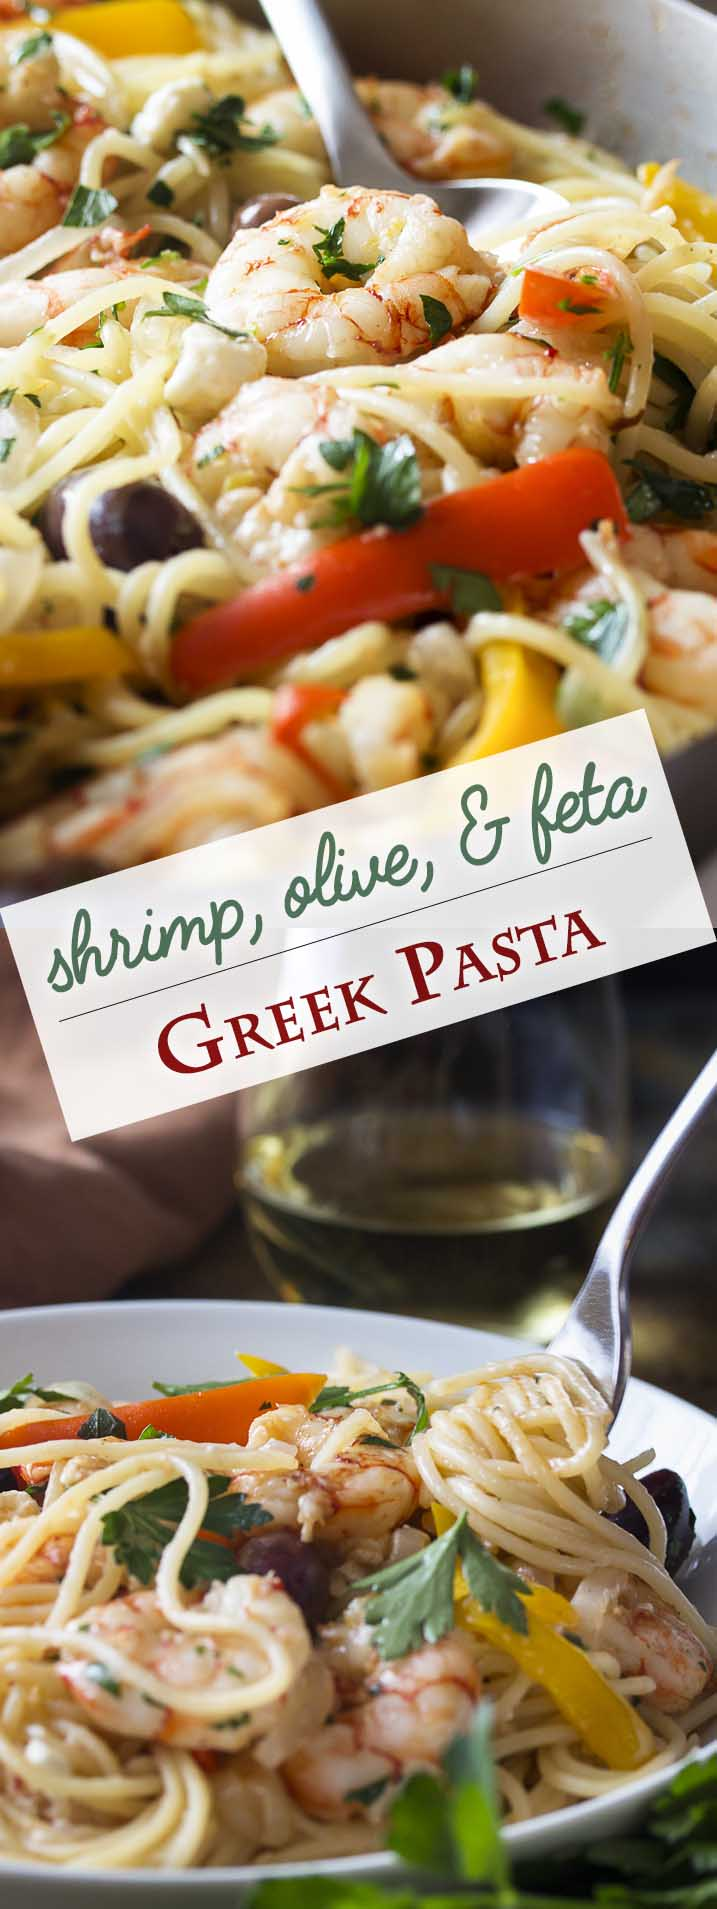 Greek pasta with shrimp, feta, olives is a great and easy skillet dinner full of tender shrimp, salty feta and olives, a good glug of olive oil, and plenty of garlic. And you get to flambe! What could be better? | justalittlebitofbacon.com #greekfood #pasta #pastadinner #shrimp #easydinner